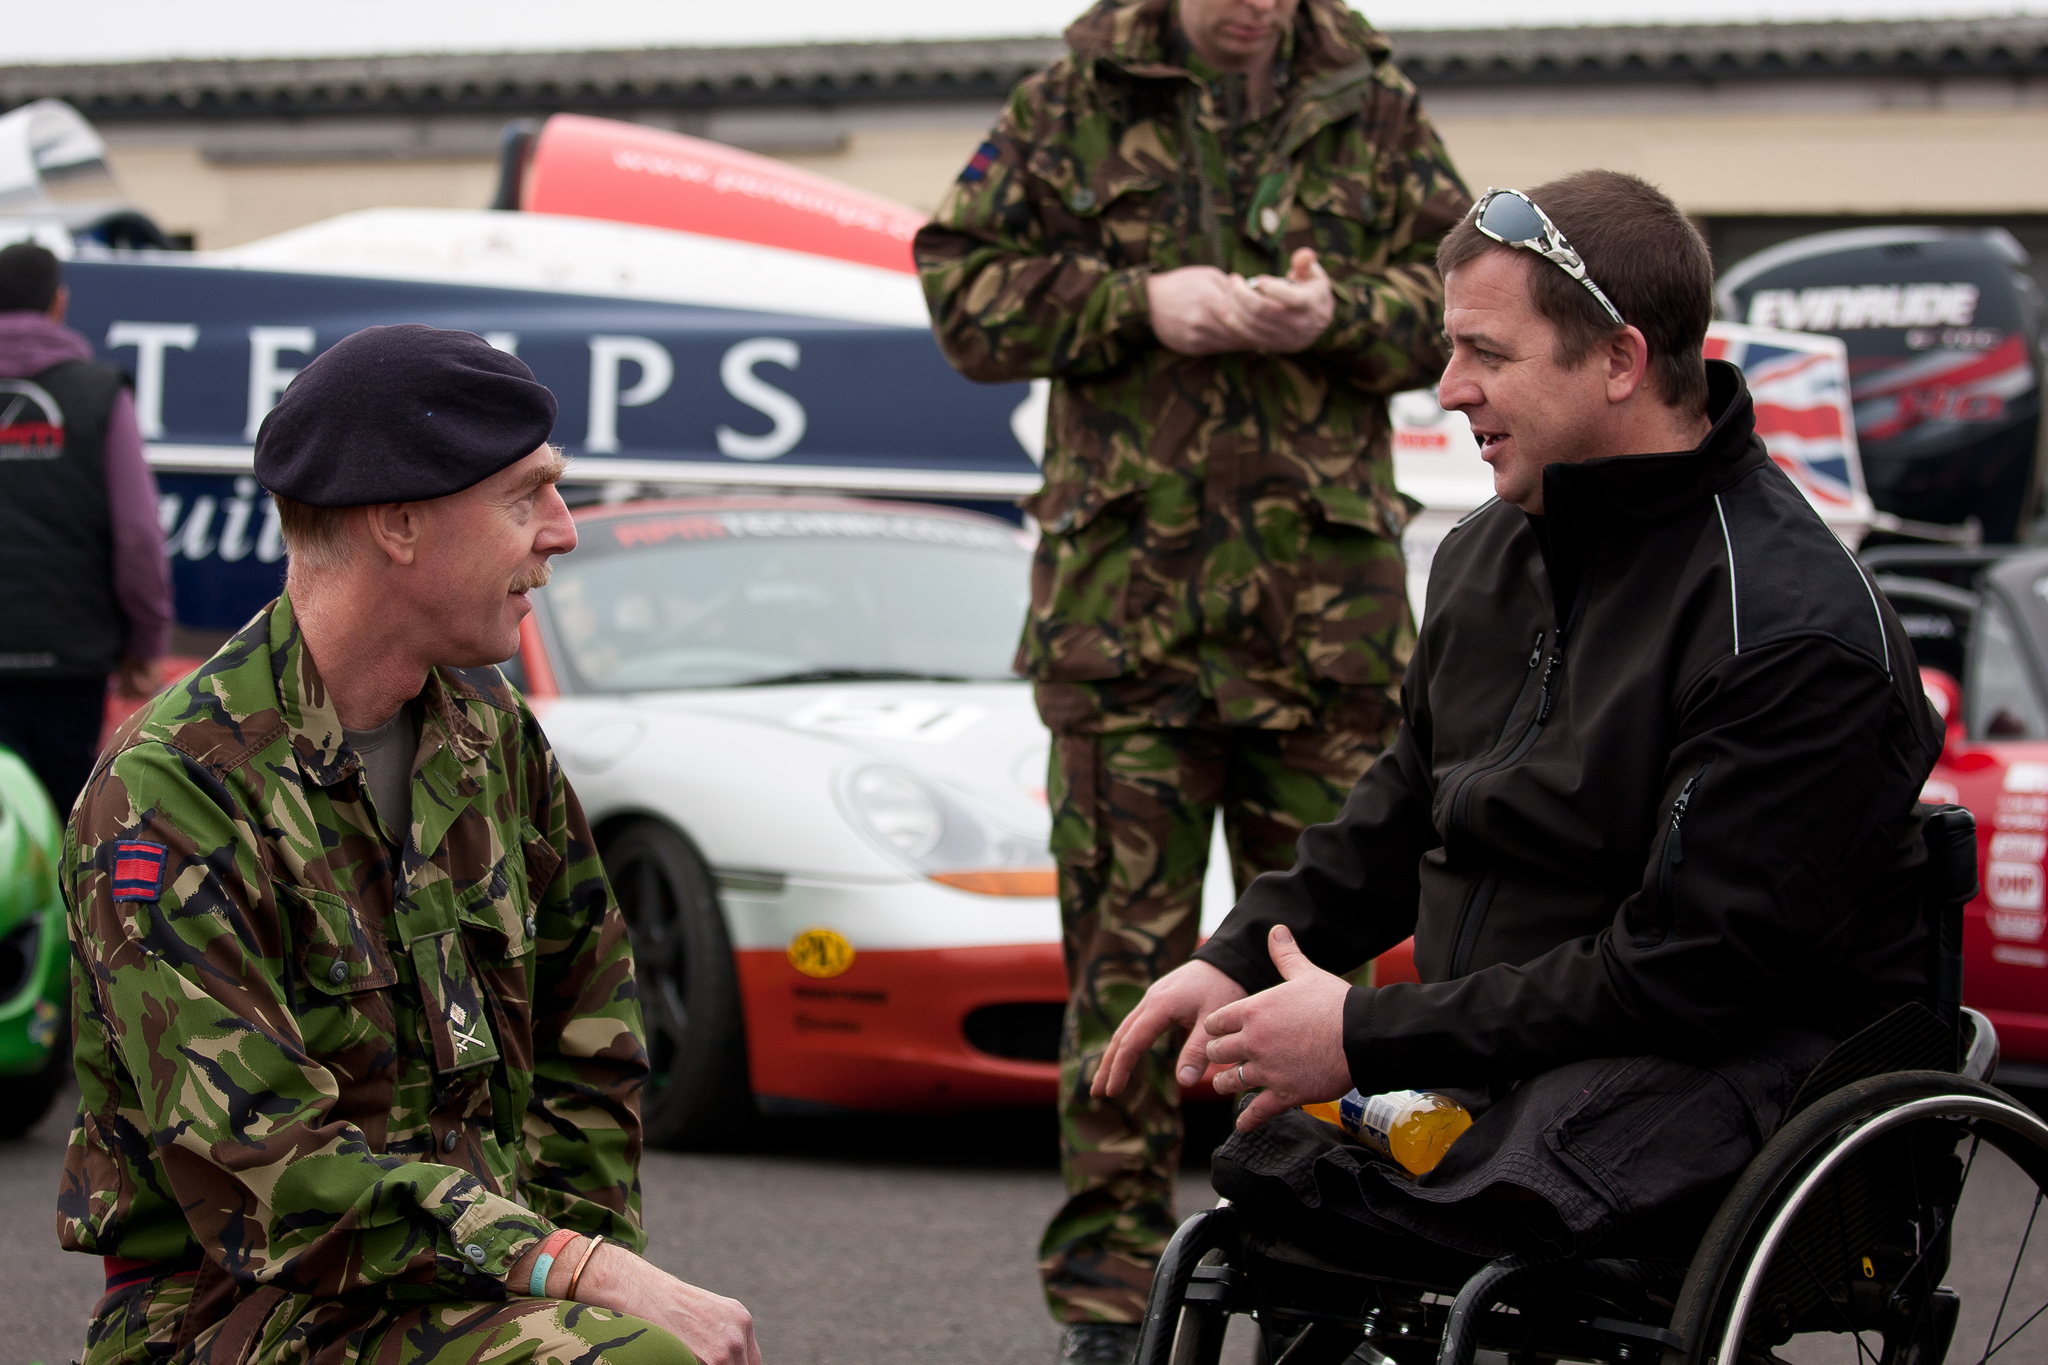 Sgt Gav Harvey, one of the founders of Mission Motorsport at the Charity's launch in 2012 with General Carew Wilks - Chairman of the British Army Motorsport Association